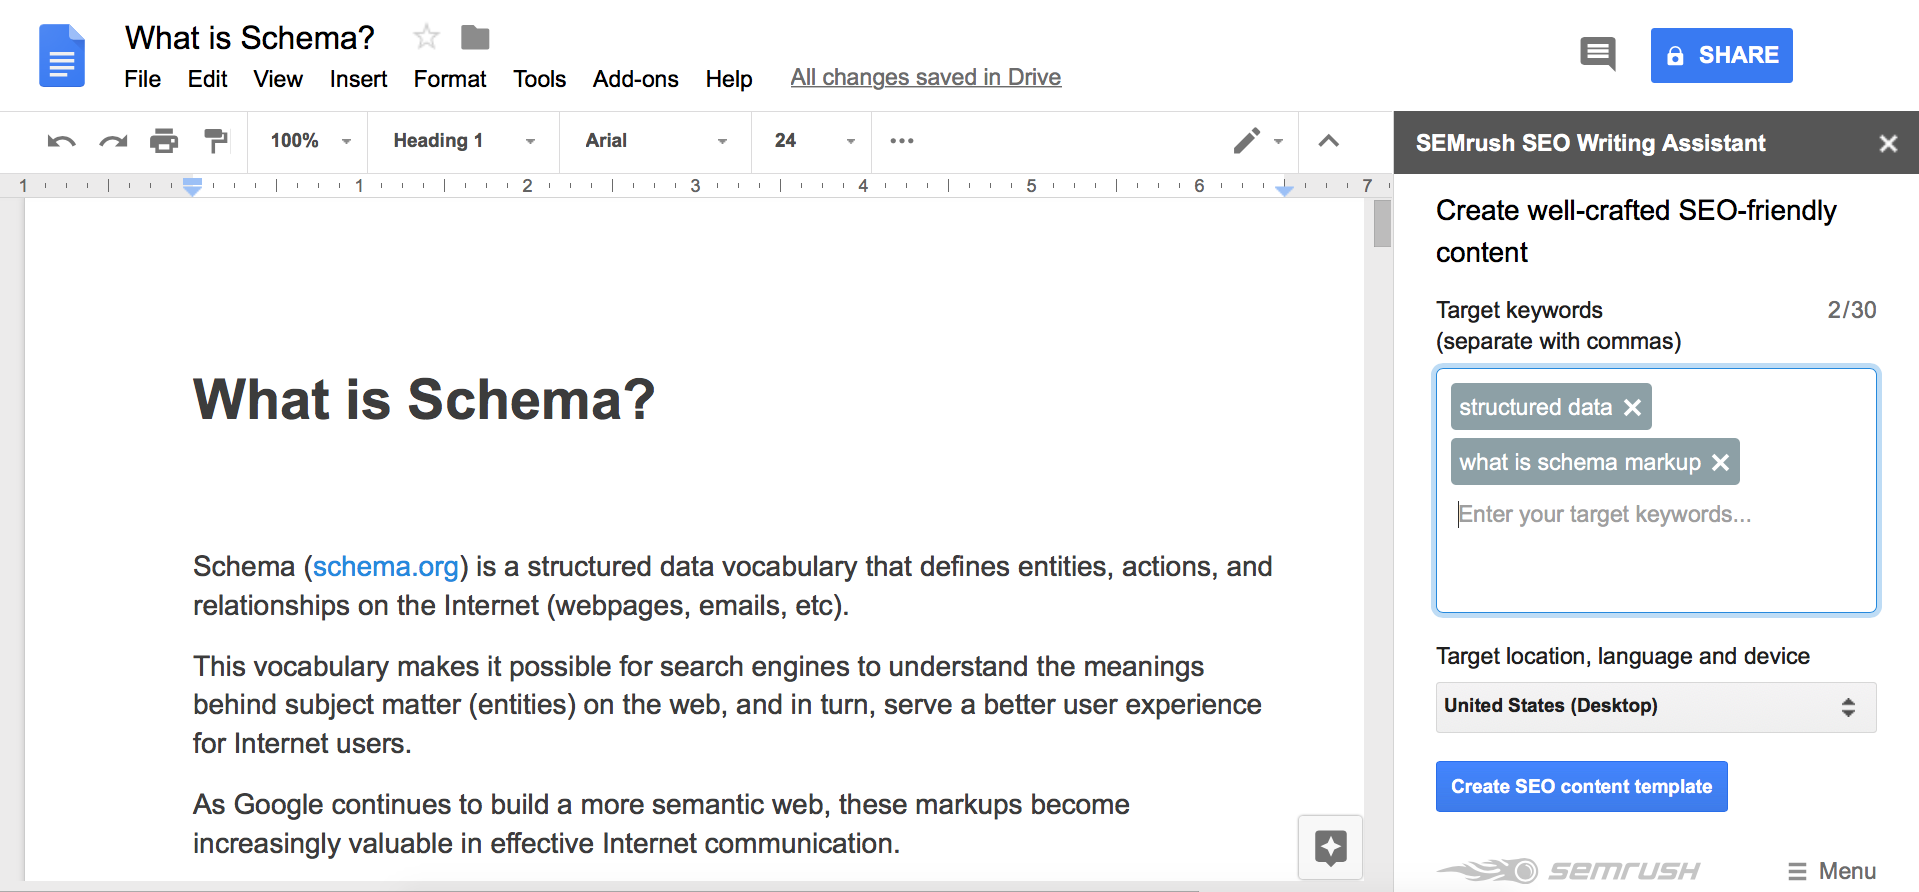 SEO Writing Assistant image 3